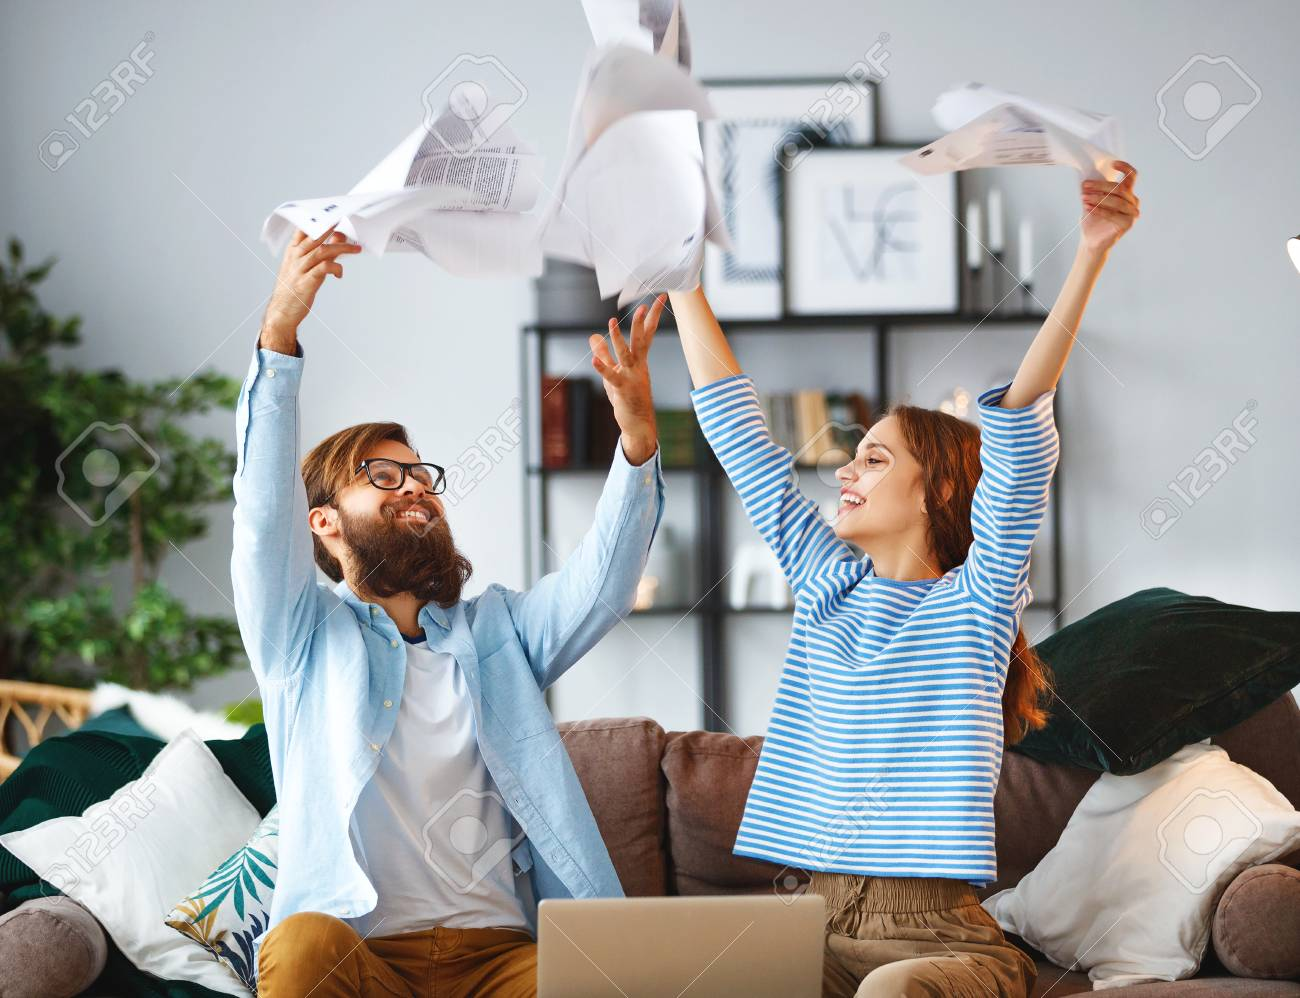 married couple with bills receipts documents and a laptop at home - 118209515